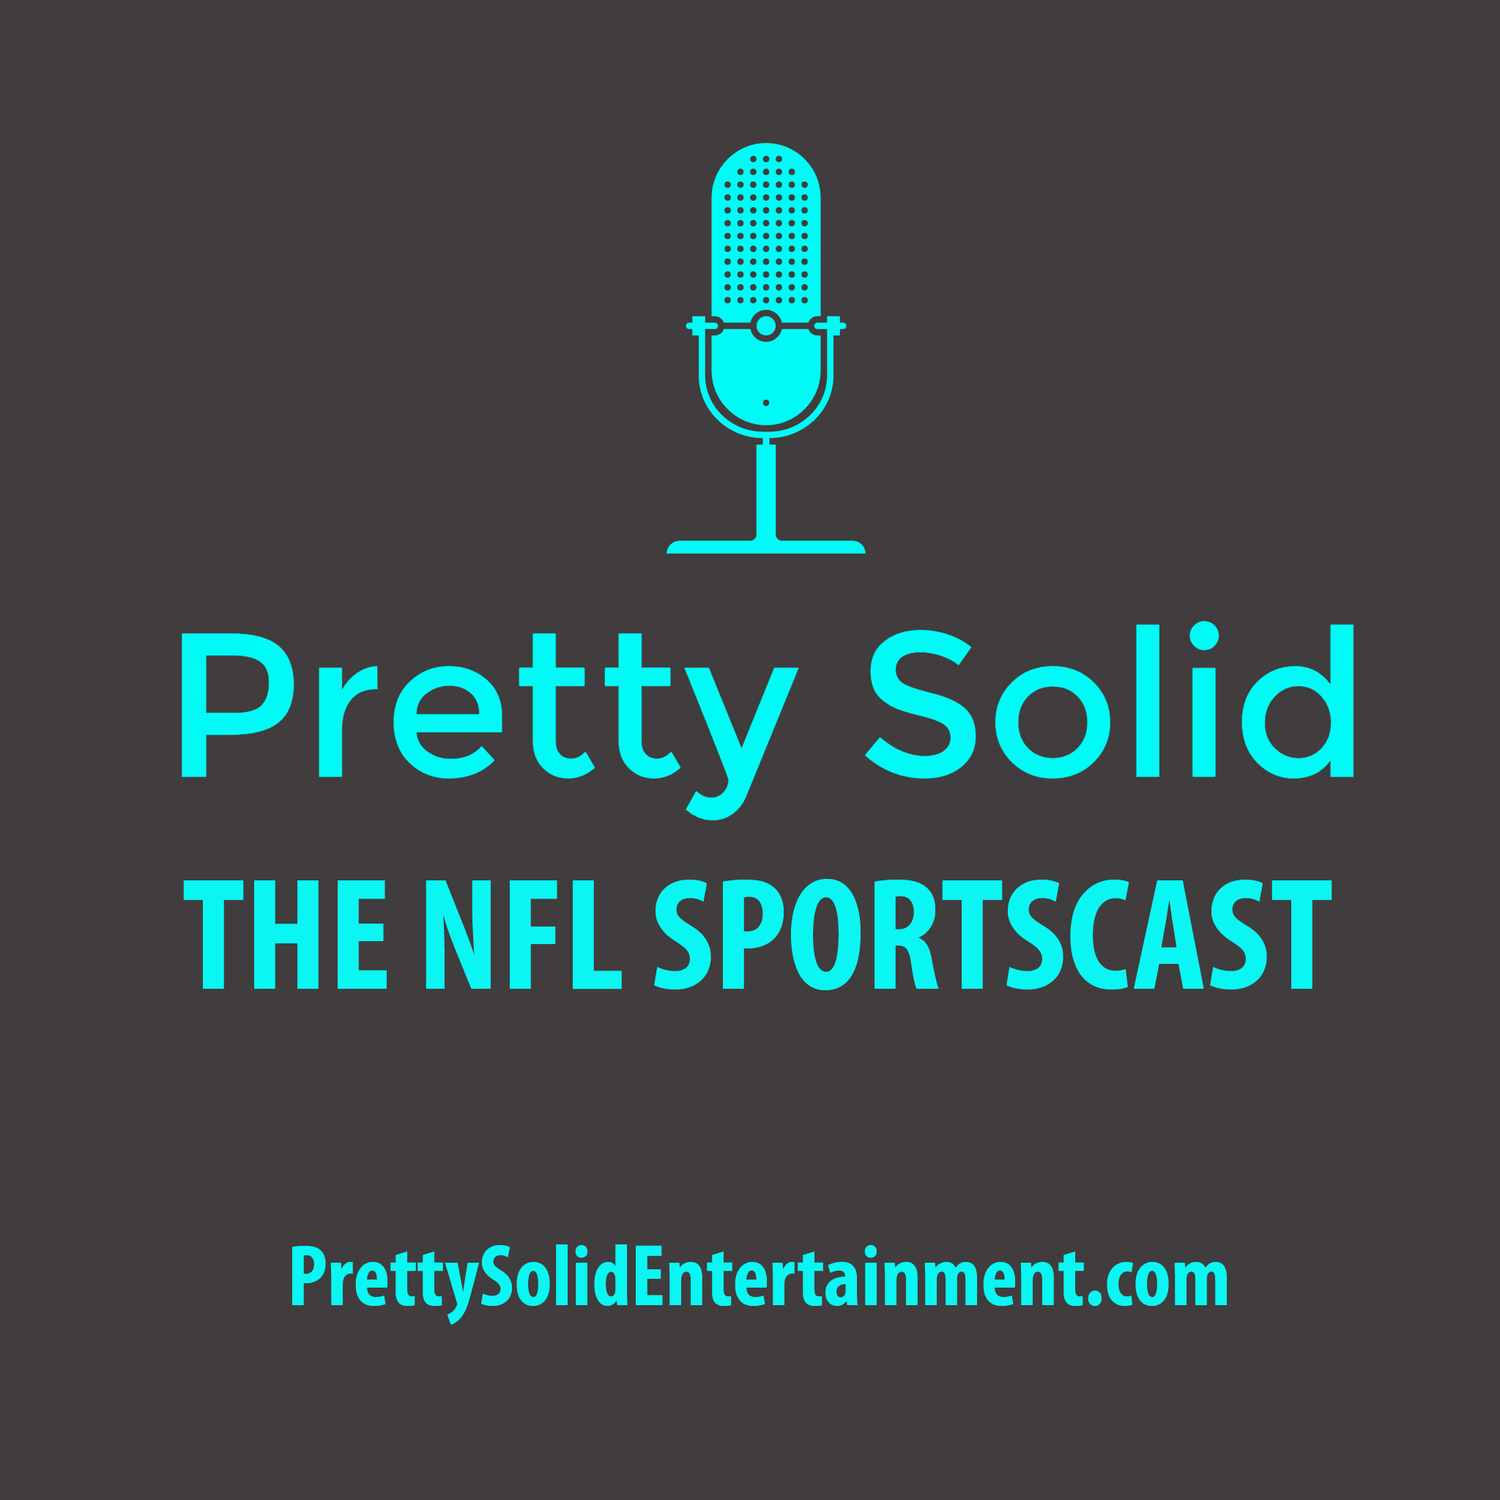 NFL SportsCast - Pretty Solid Entertainment